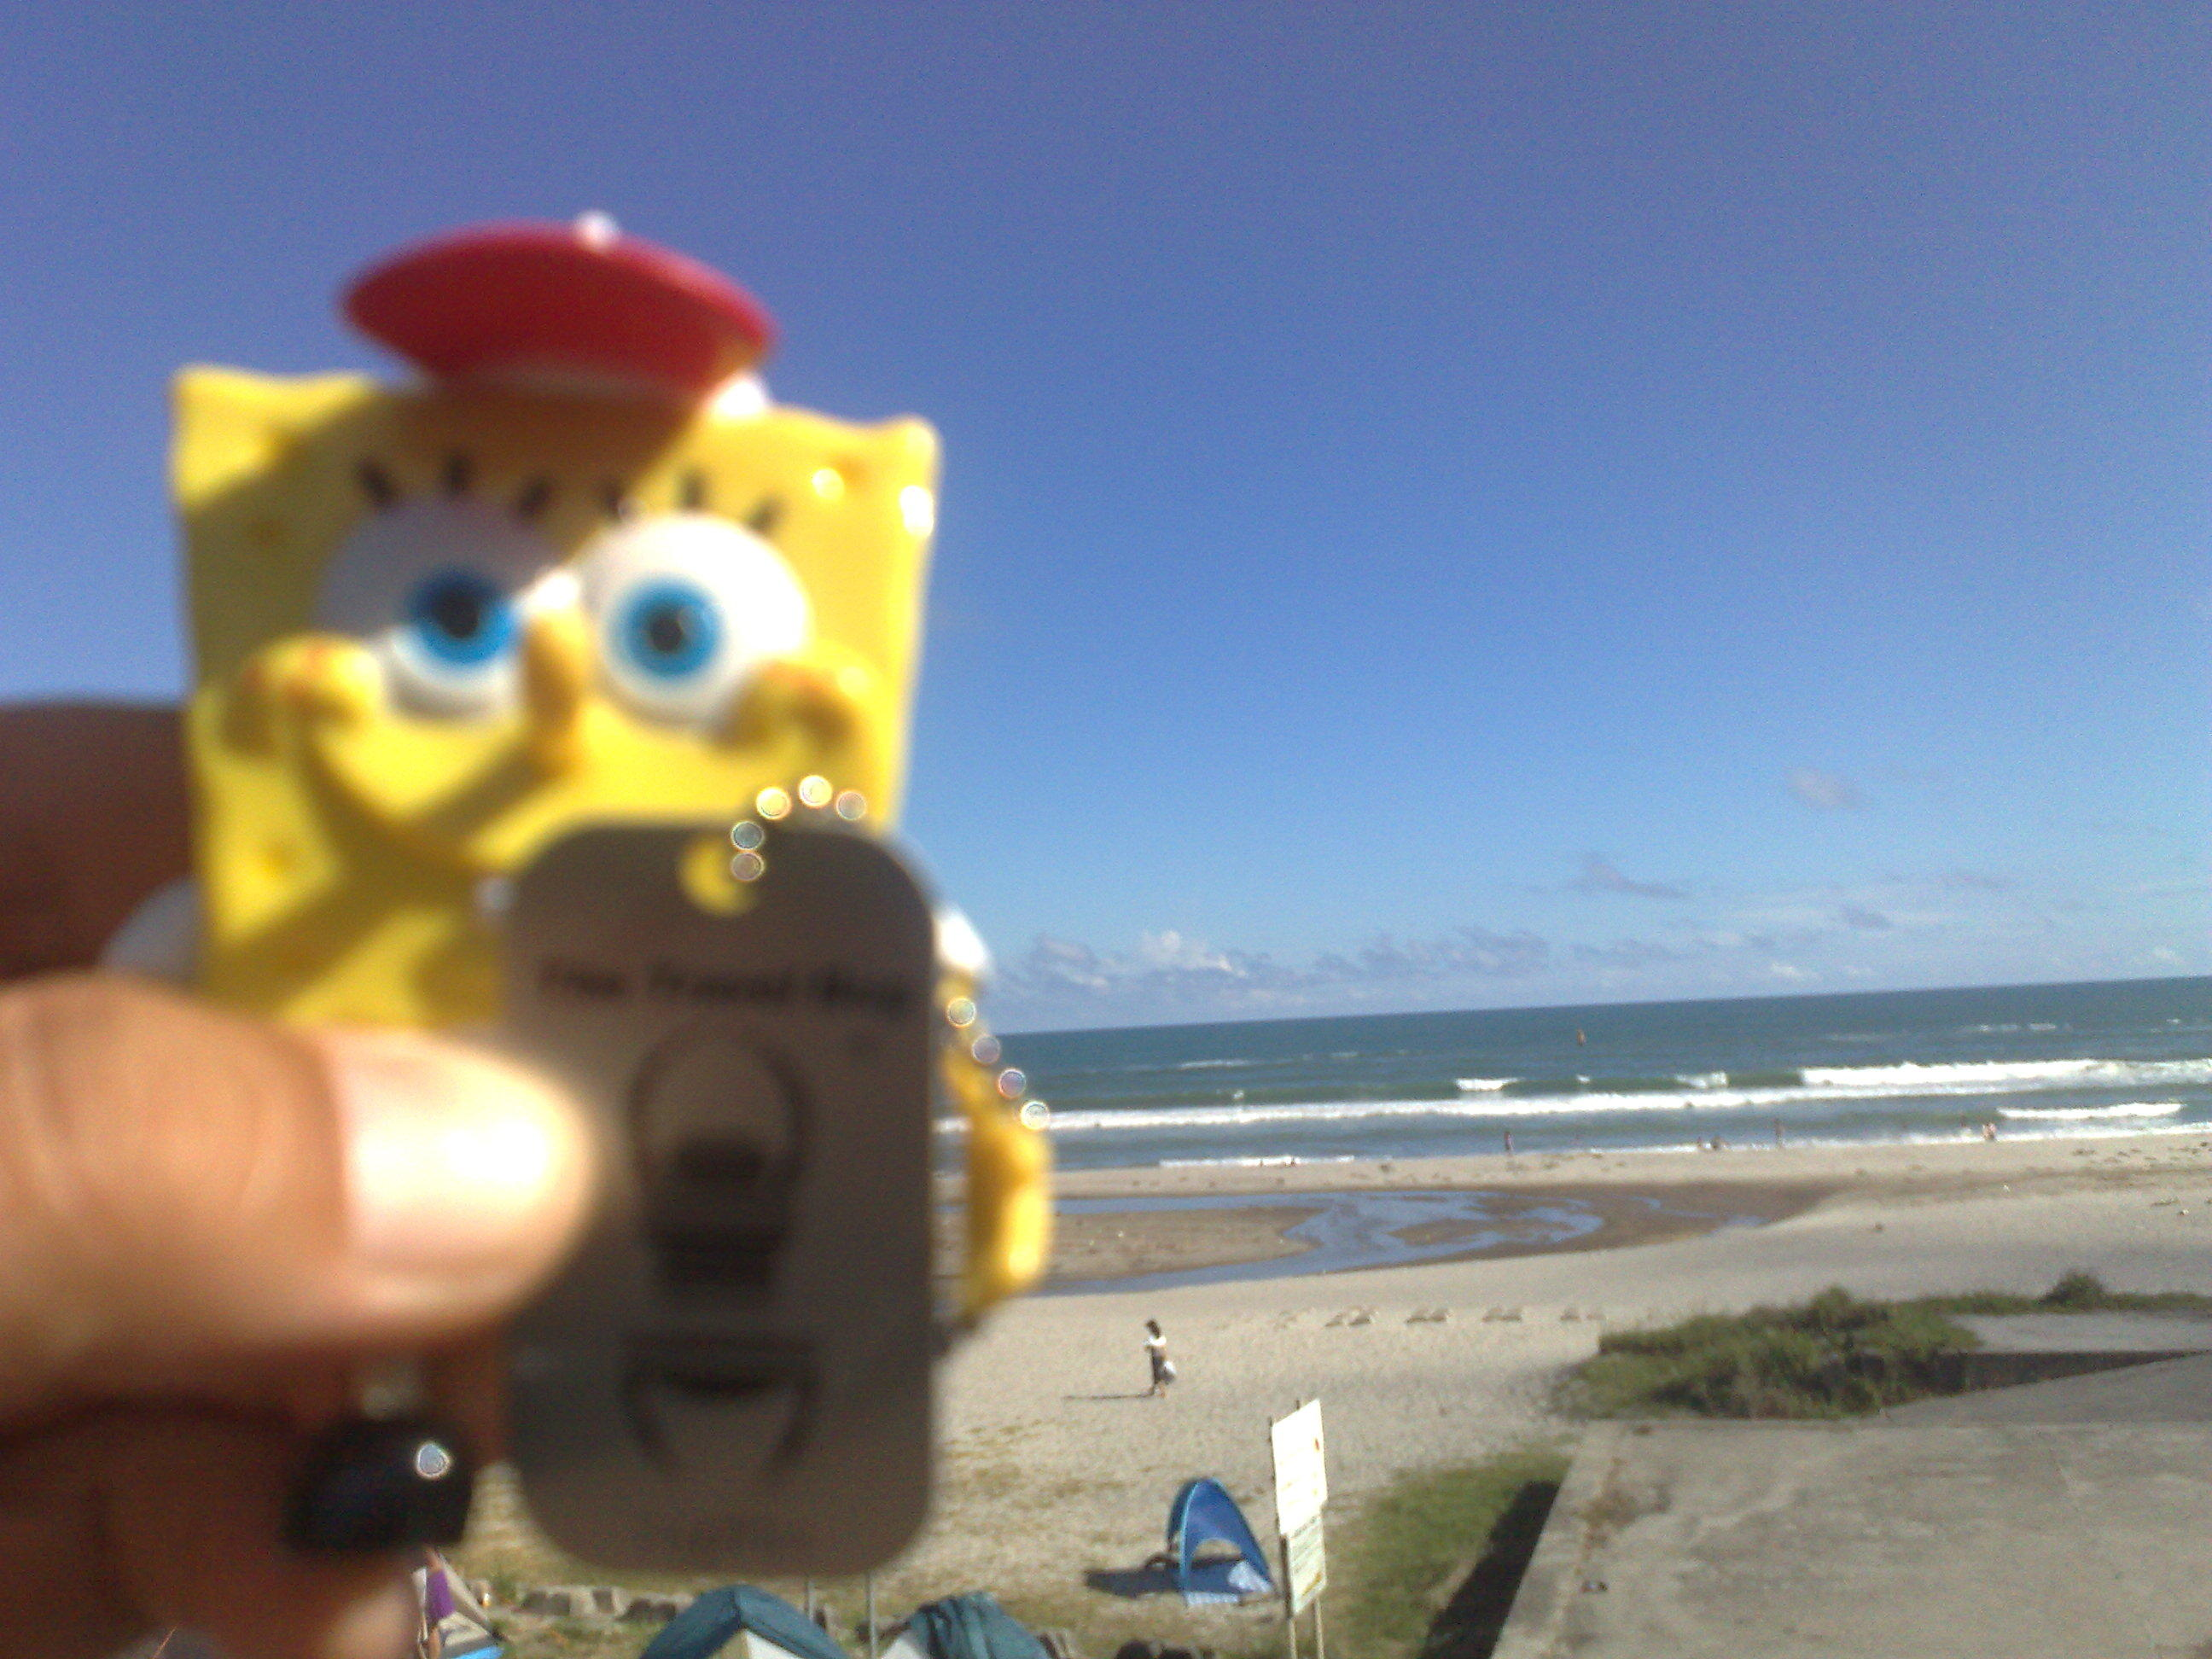 Bob at the Pacific Ocean